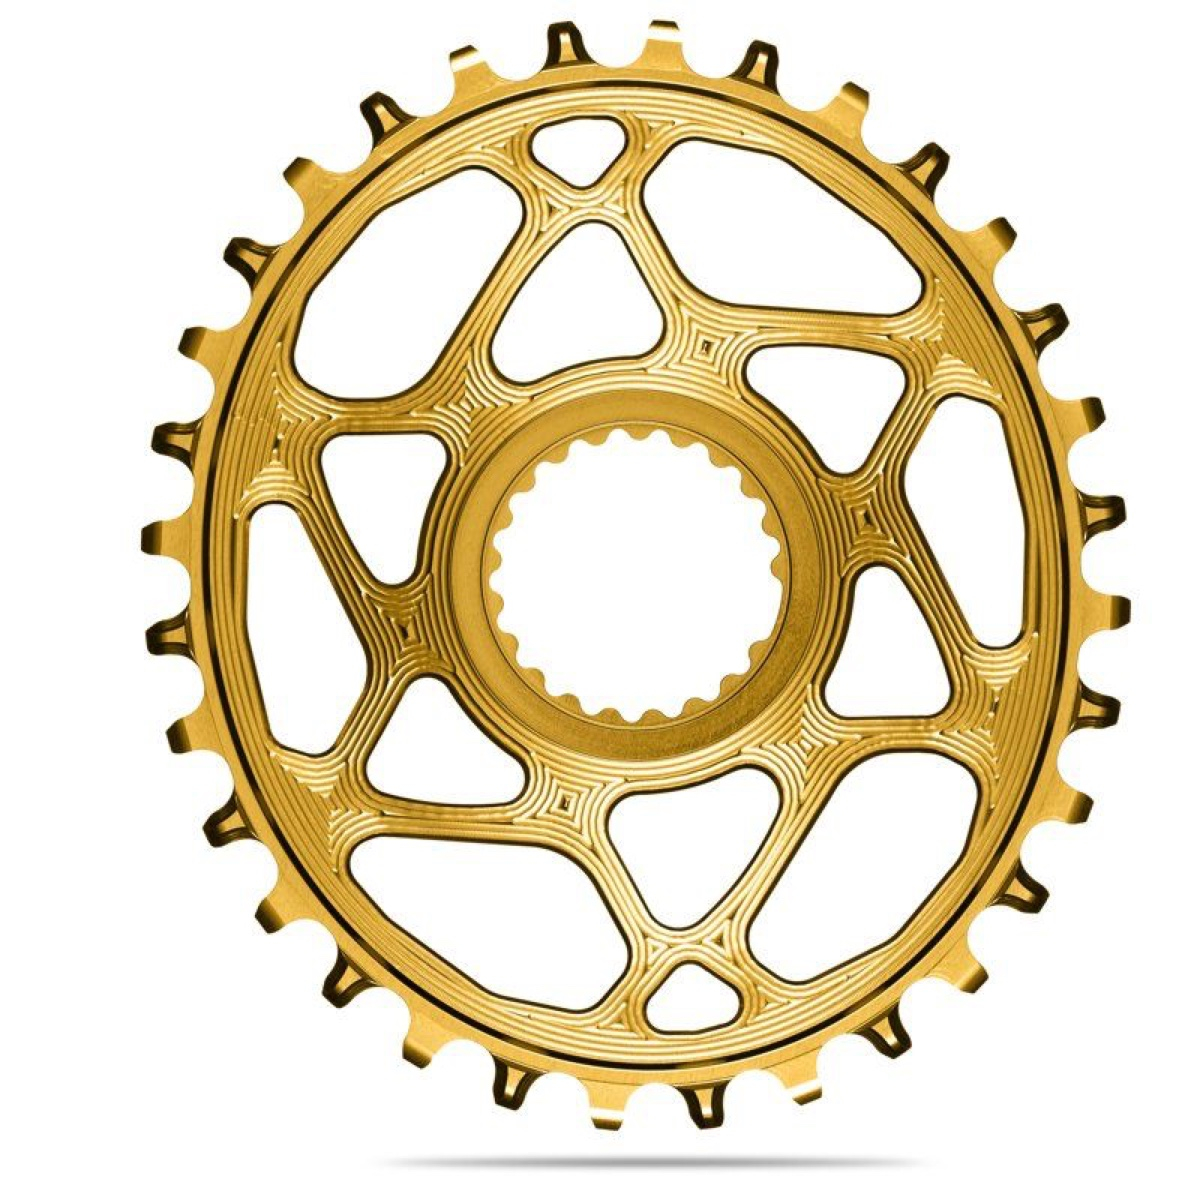 AbsoluteBlack Klinge NW Shimano 12 speed OVAL - Guld - SHDMOVxxGL | chainrings_component